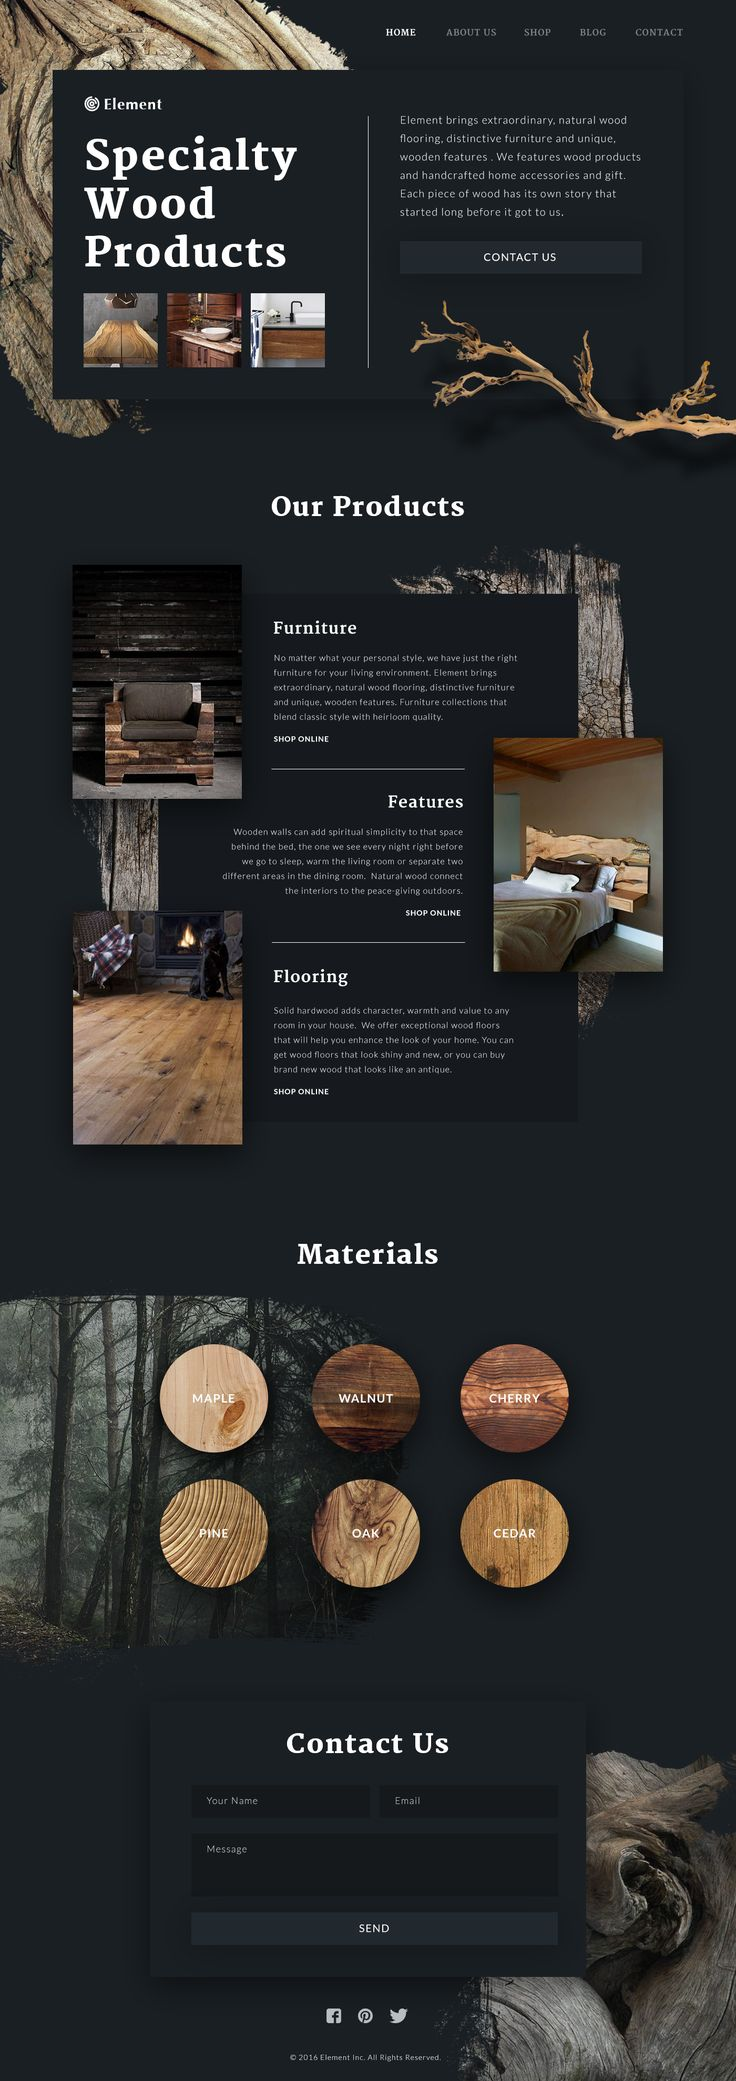 Wood Products Landing Page U2013 Ui Design Concept By Tubik Studio